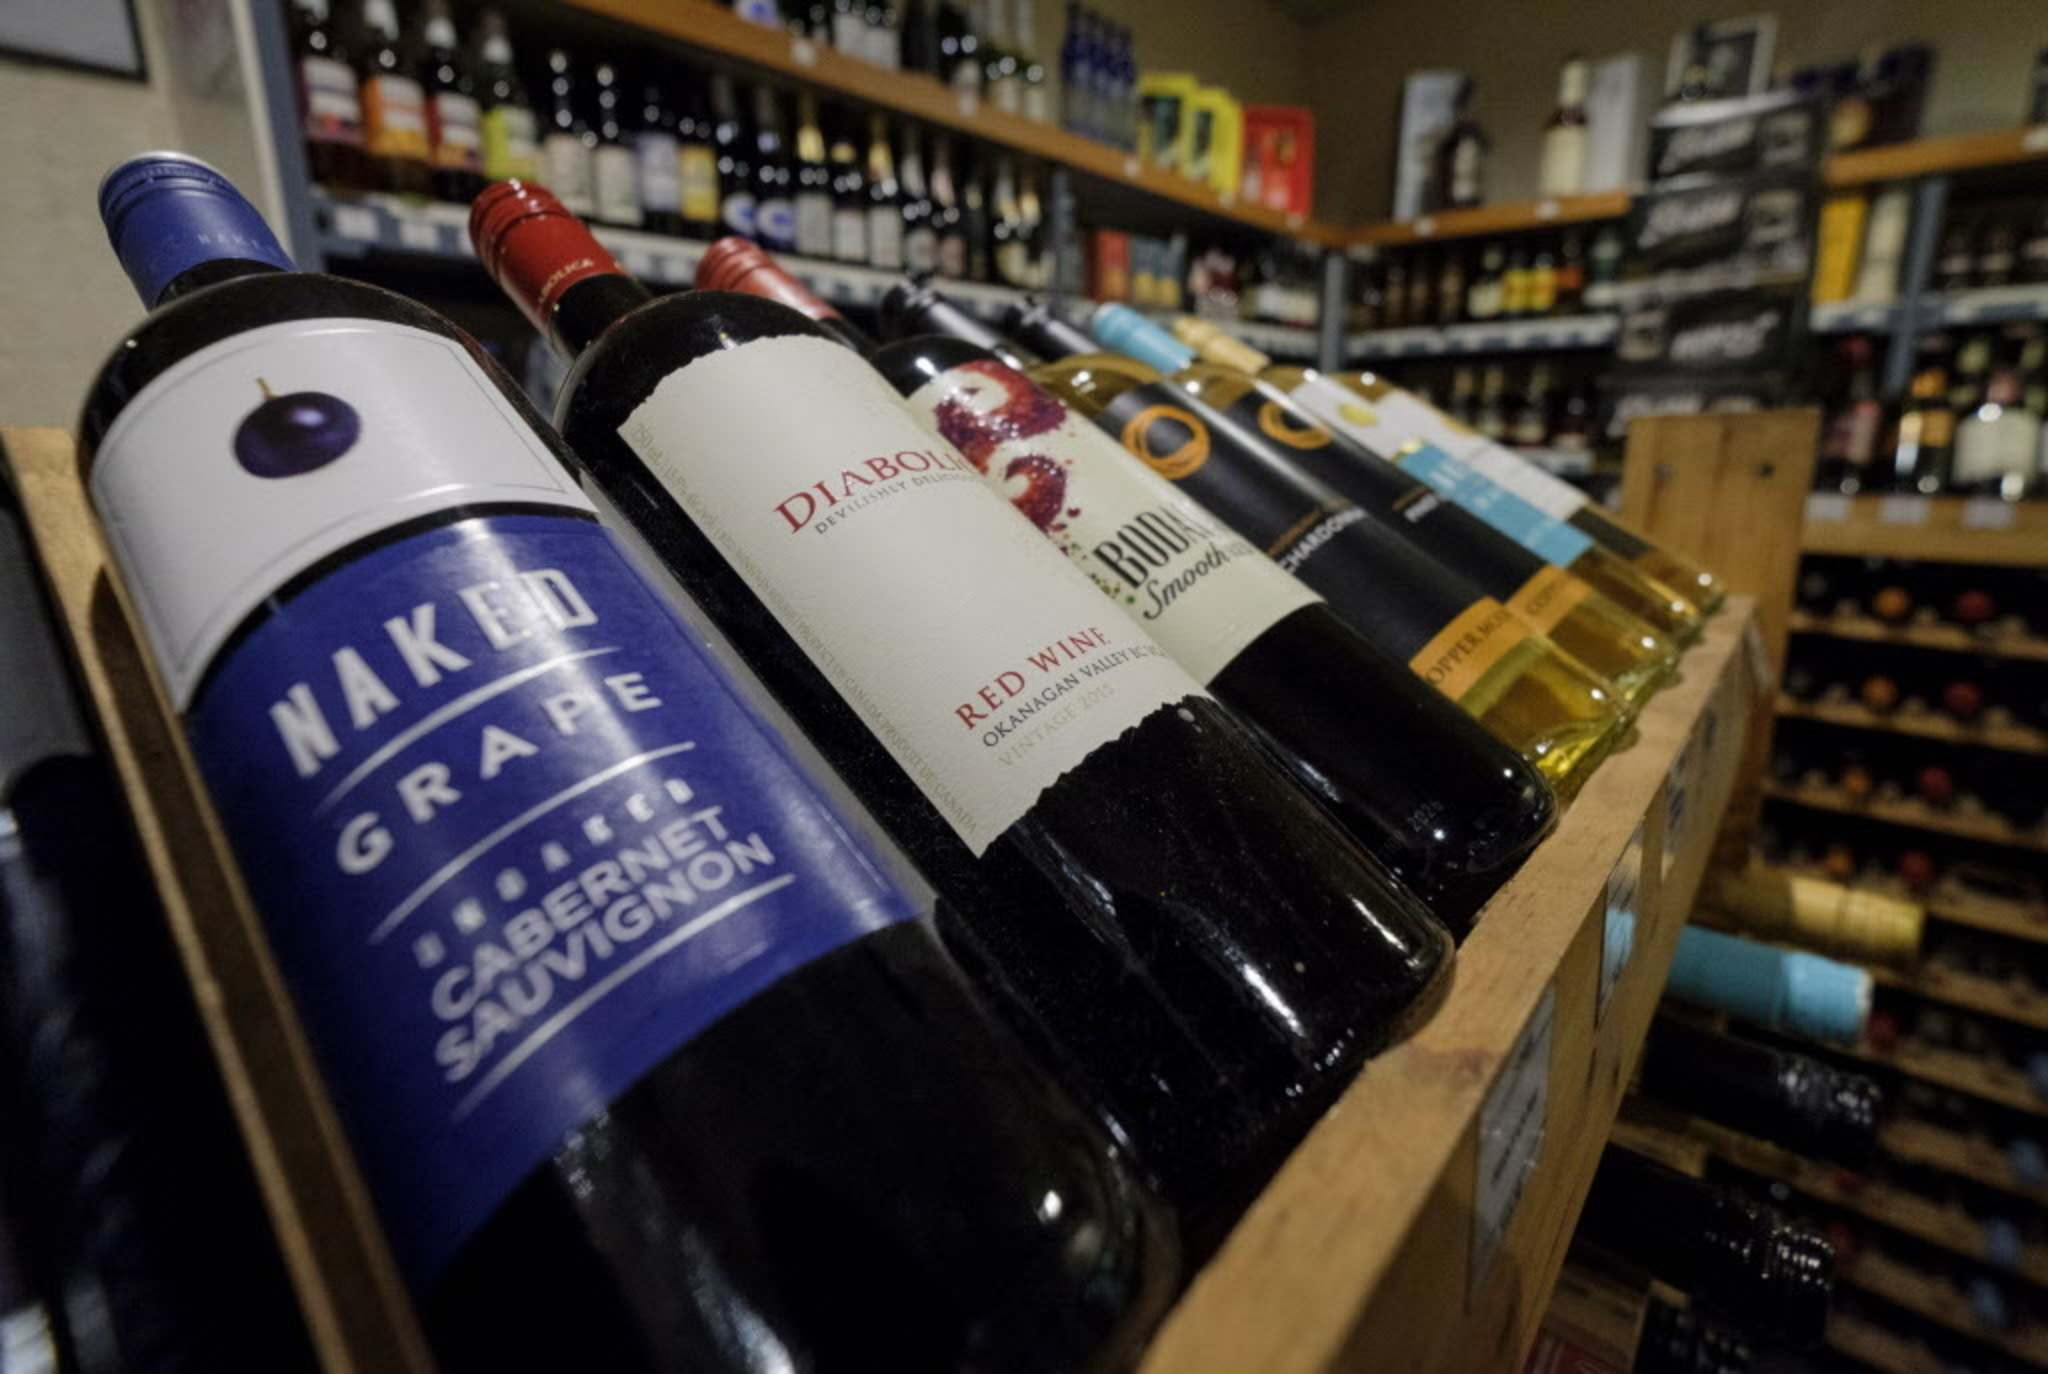 Jeff McIntosh / THE CANADIAN PRESS FILES</p><p>B.C. wine can be sold again in Alberta after Premier Rachel Notley rescinded a ban.</p>